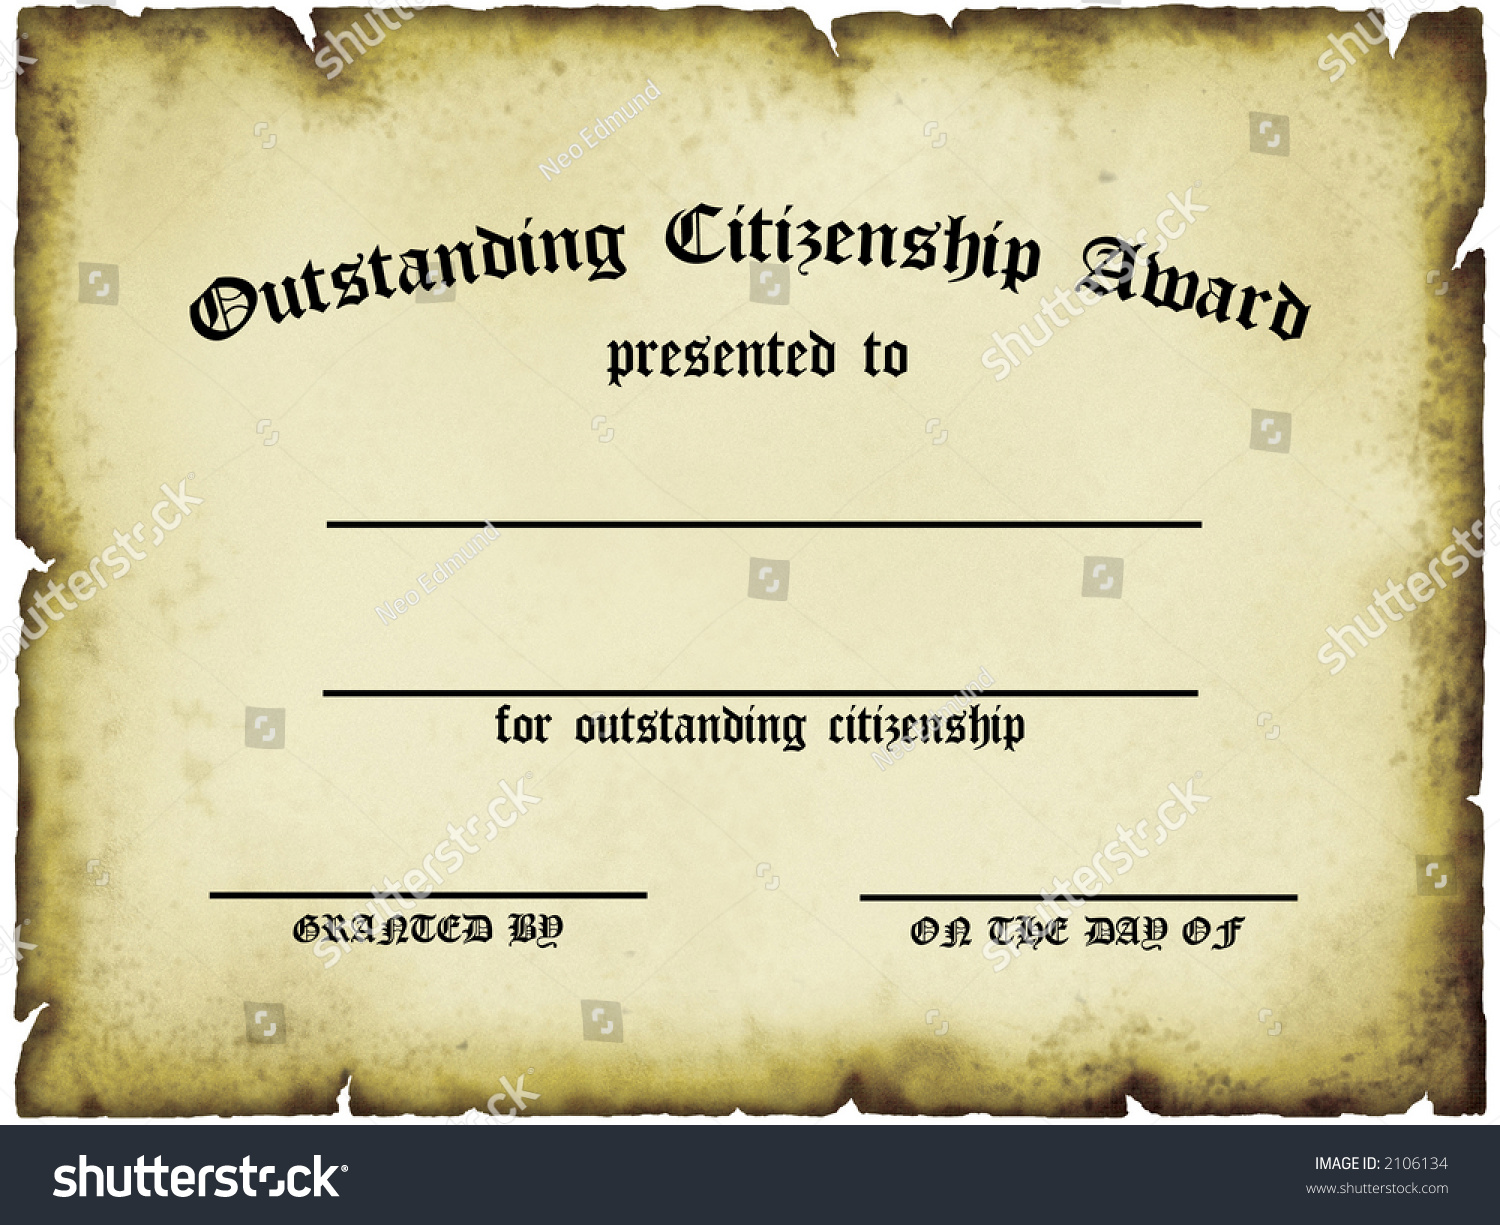 Outstanding Citizenship Award Certificate Stock Illustration 2106134